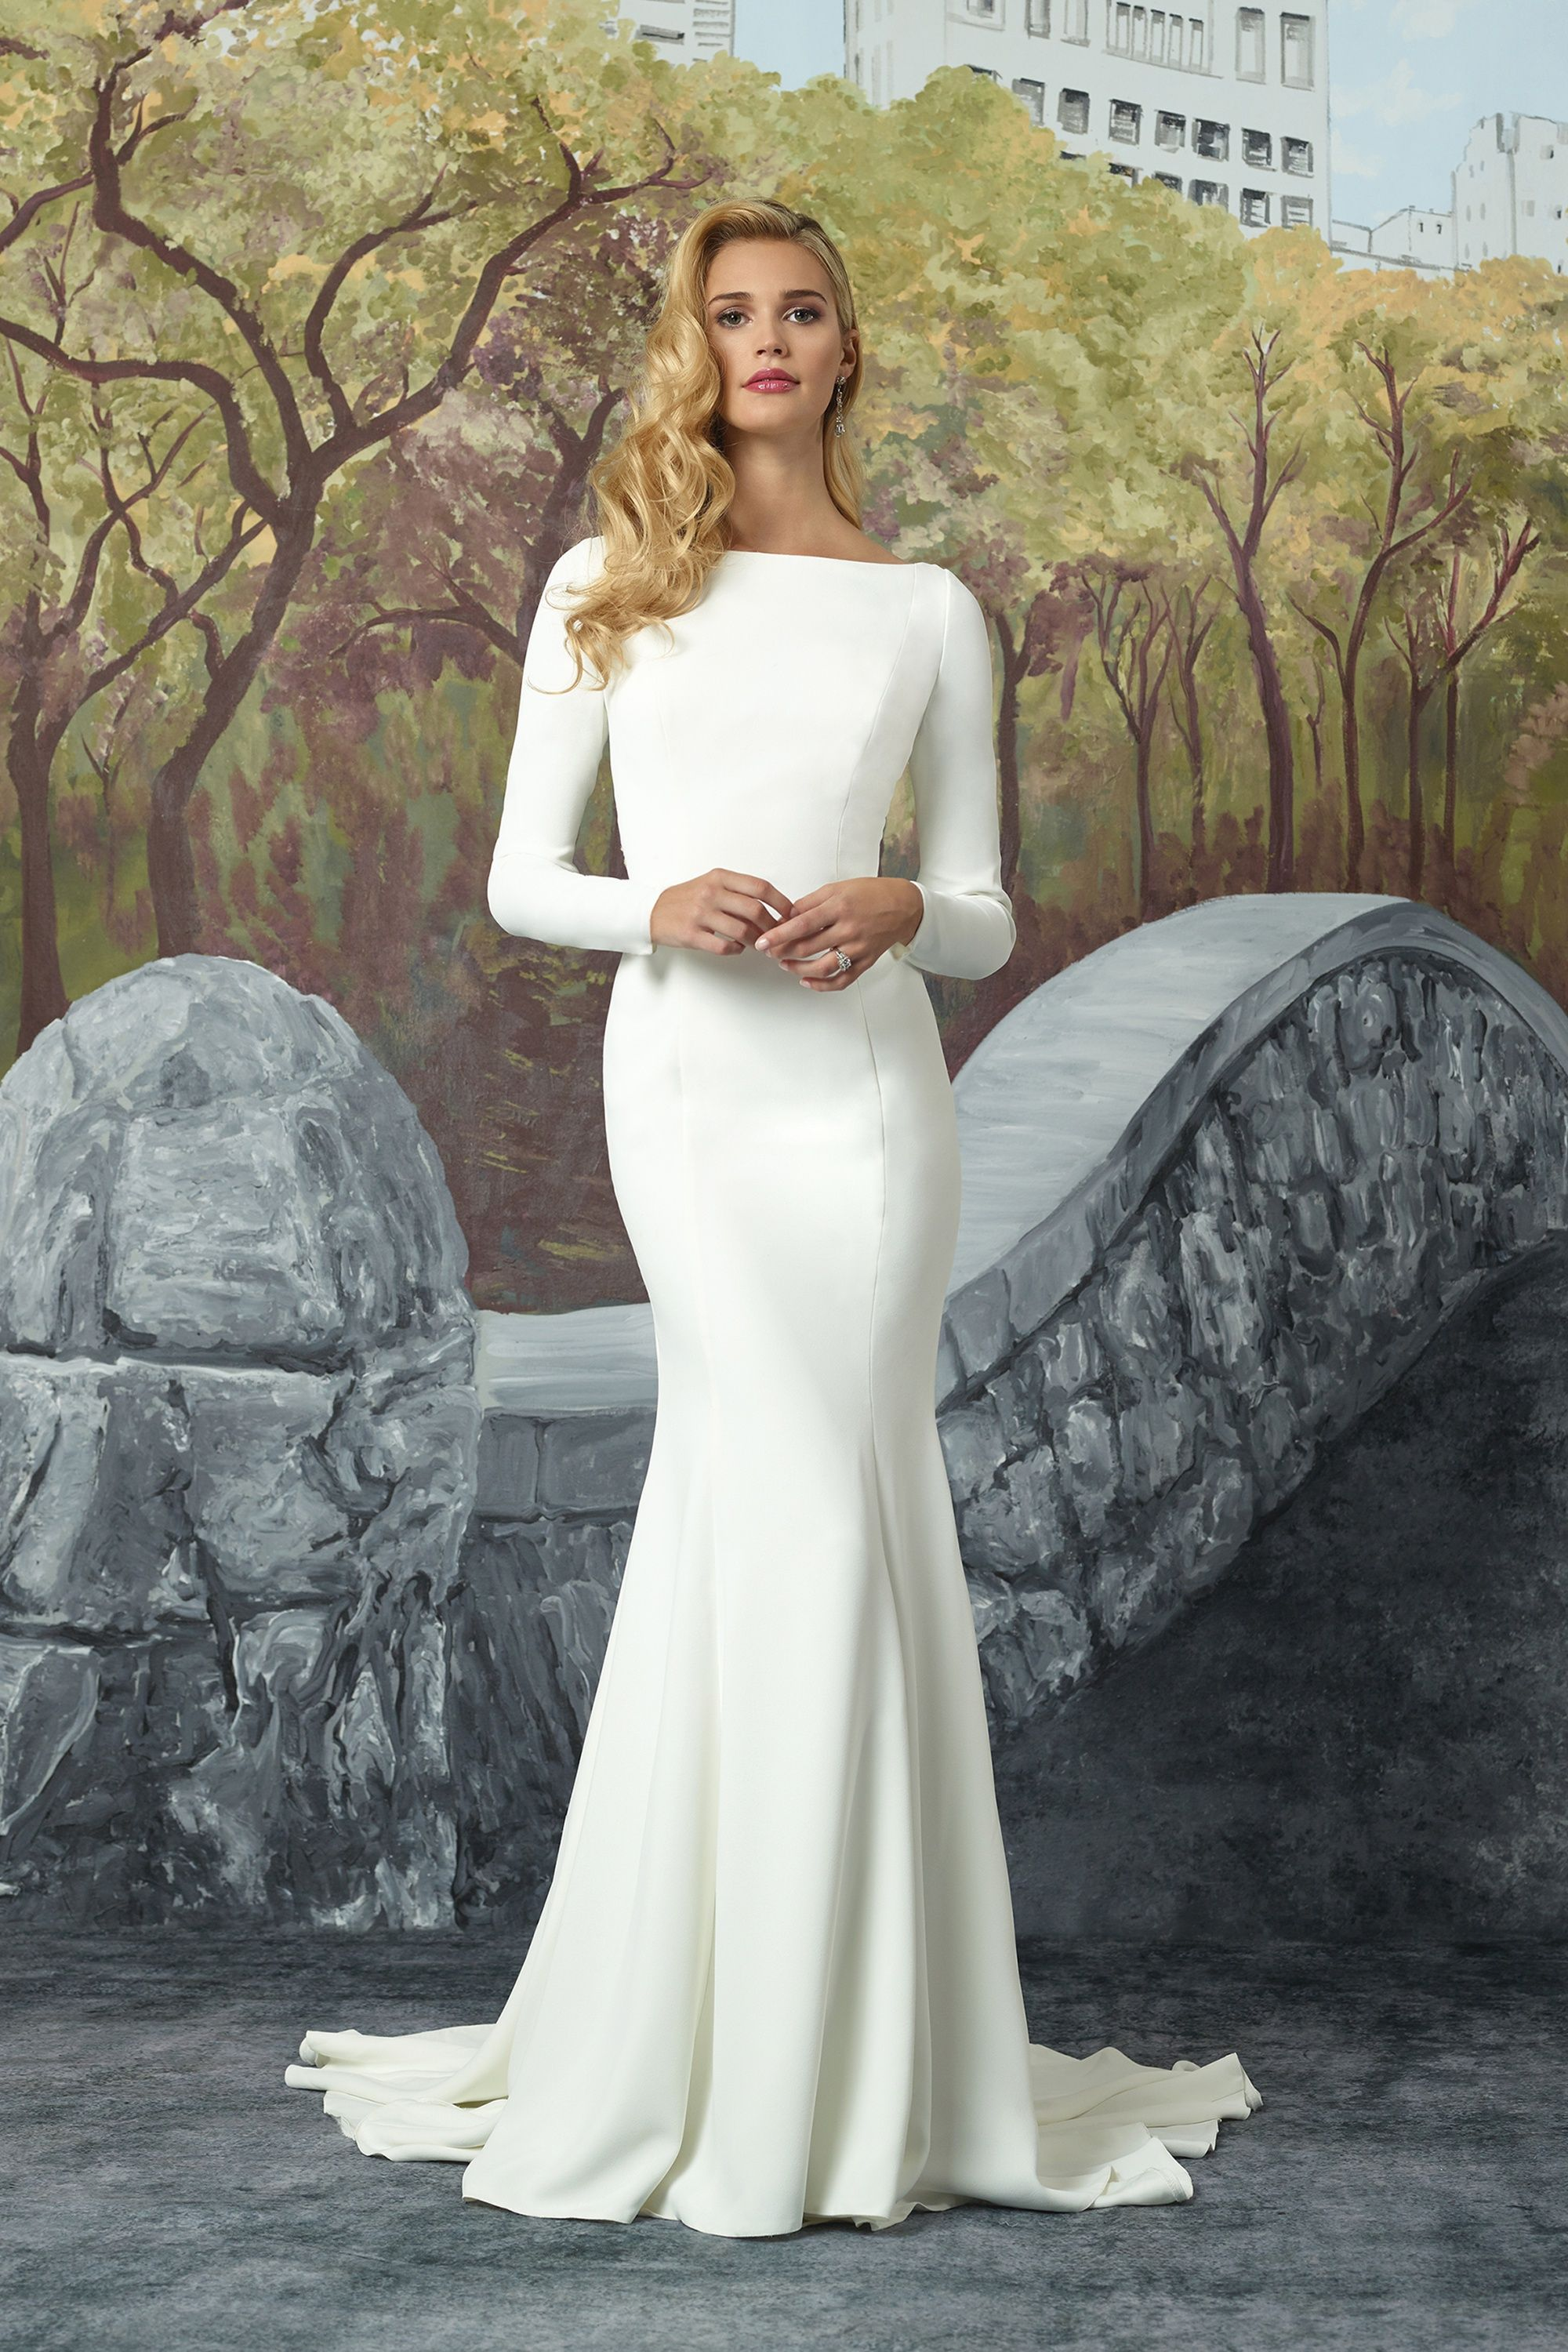 dff2a8e1132 Bridal Gown Available at Ella Park Bridal